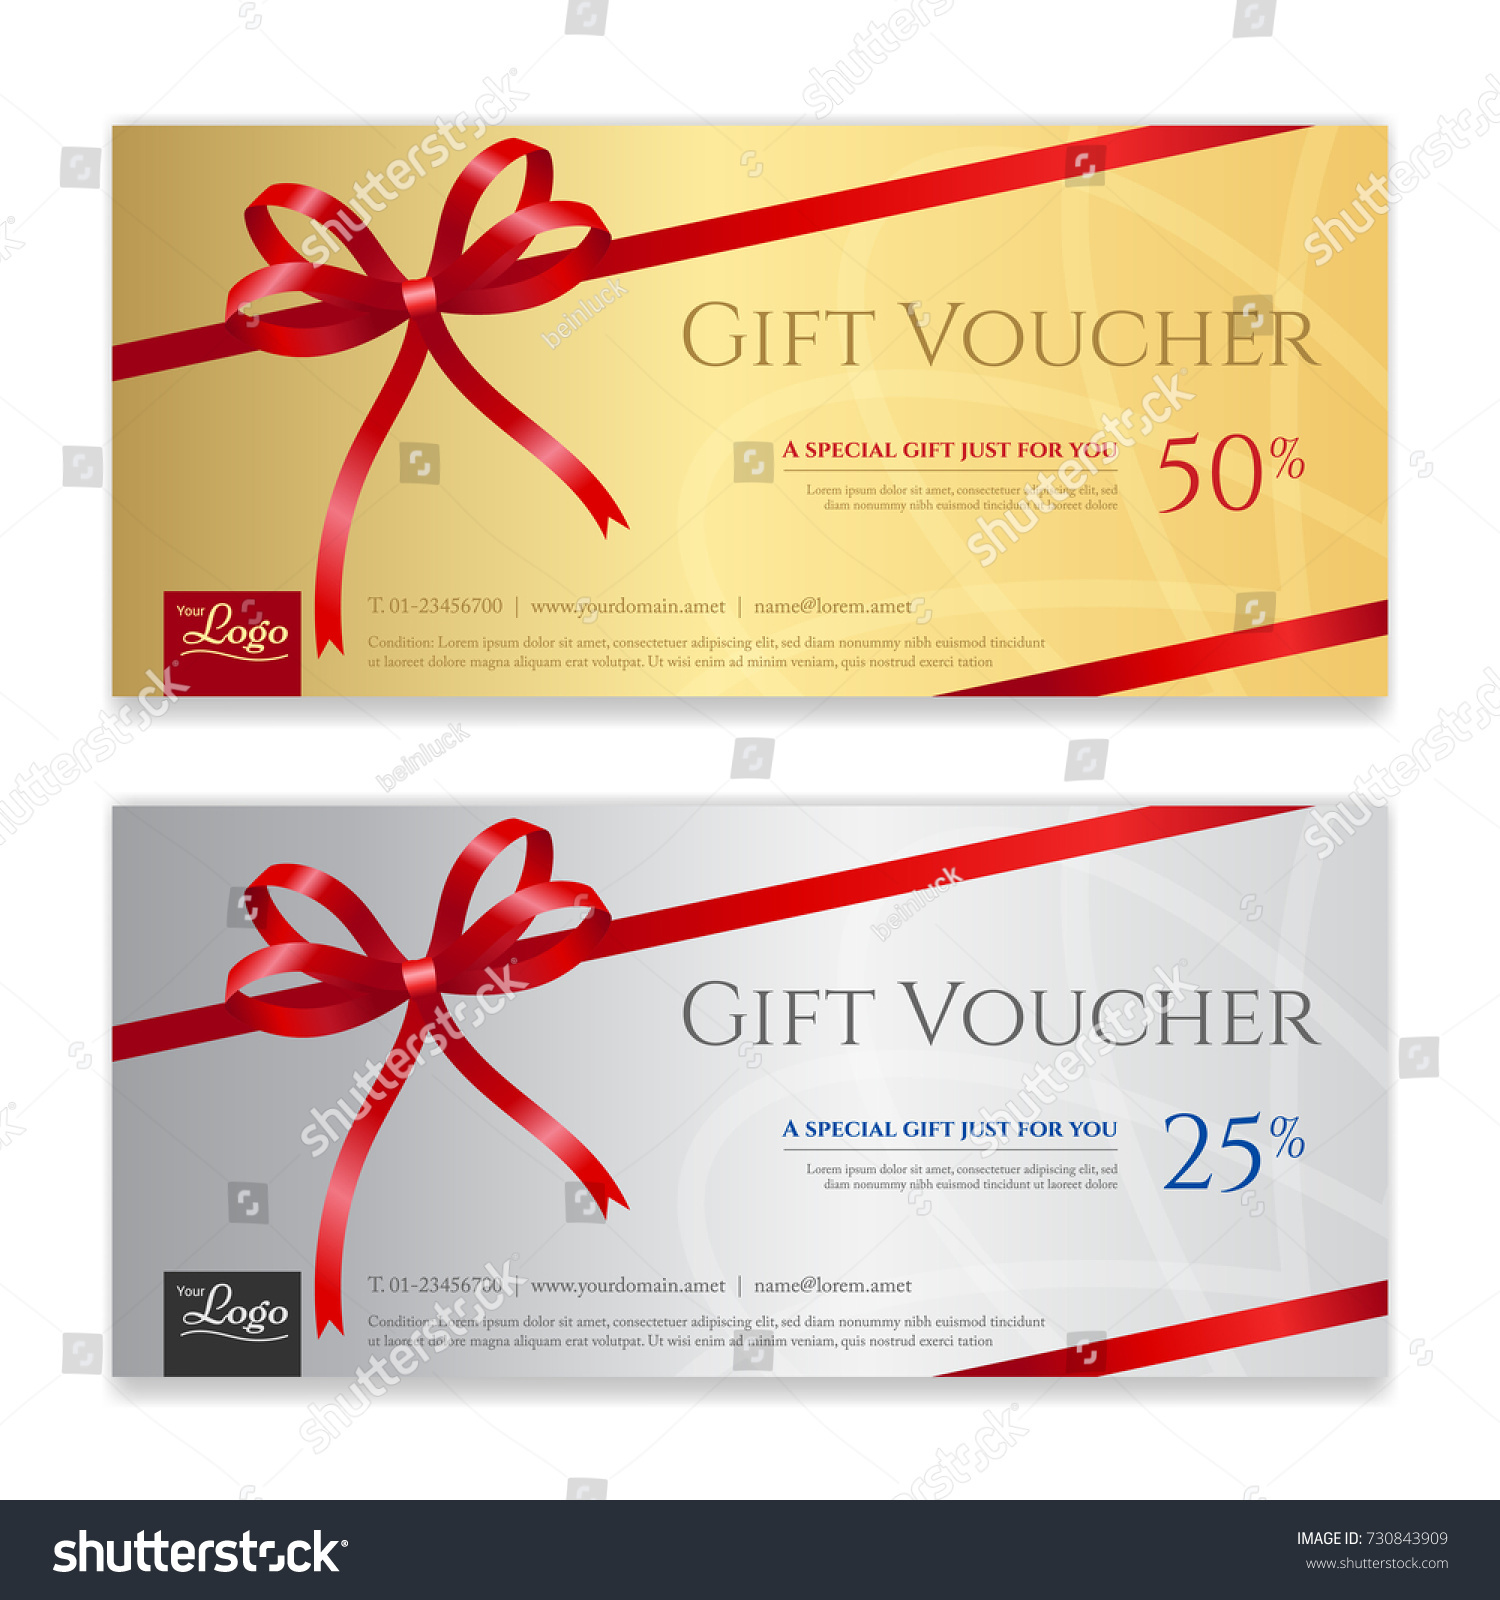 Gift voucher certificate discount card template stock vector gift voucher certificate or discount card template for promo compliment xflitez Choice Image